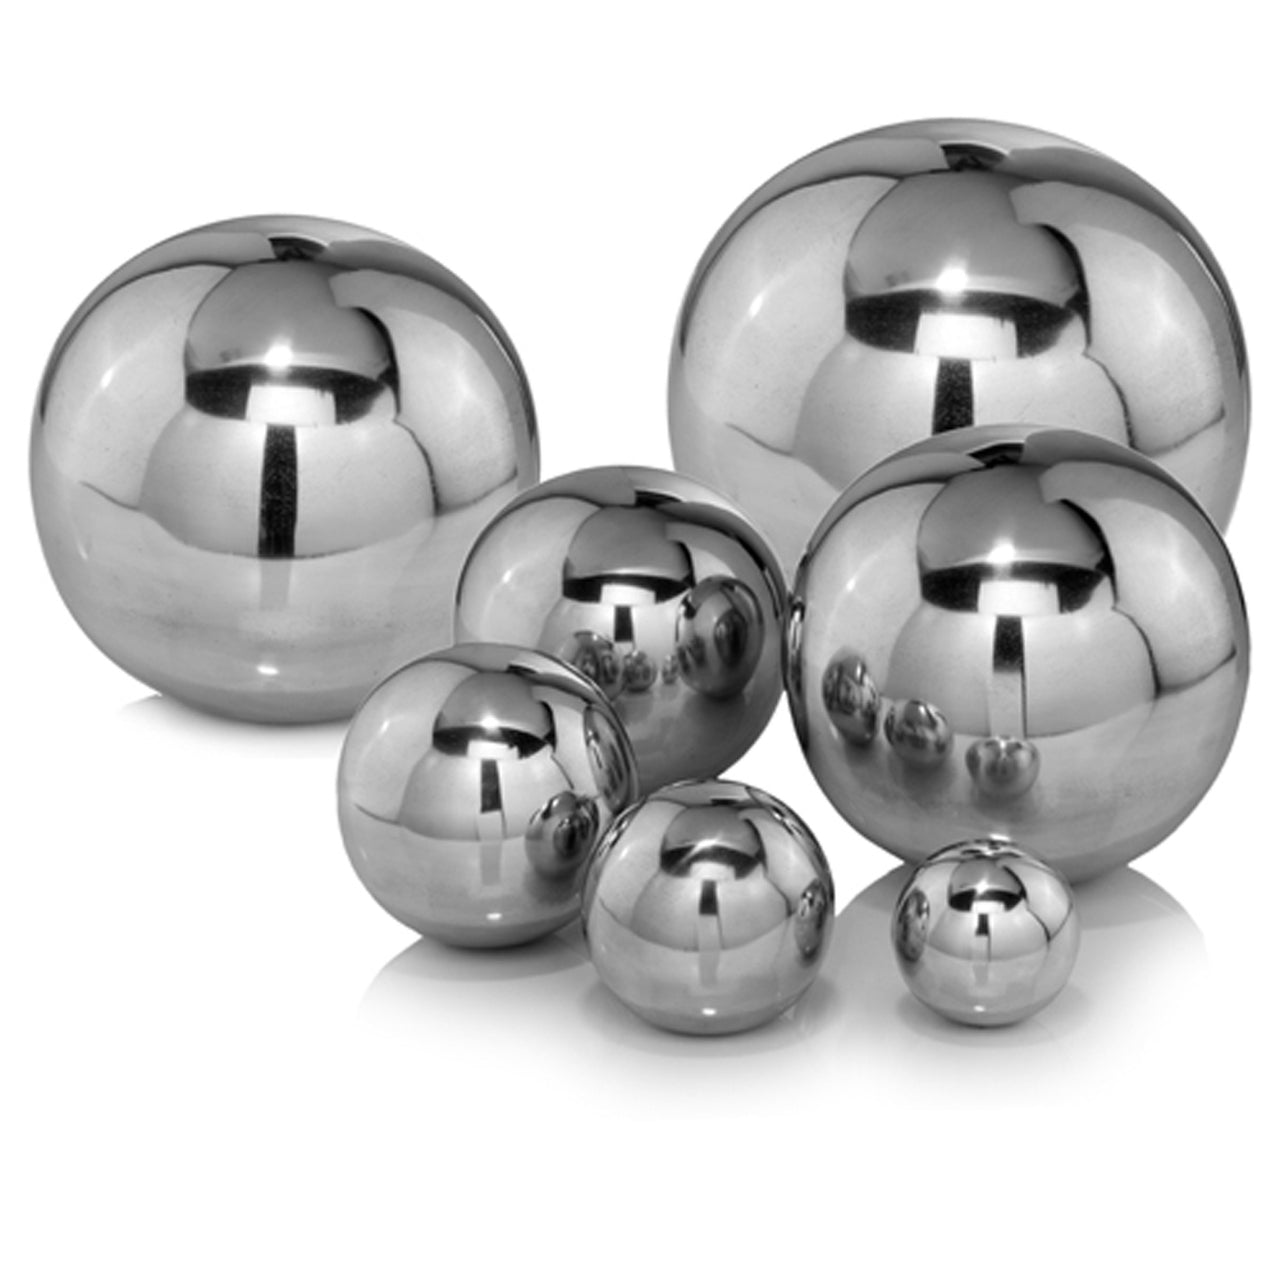 "Bola Polished Sphere 12""D - Casa Muebles"